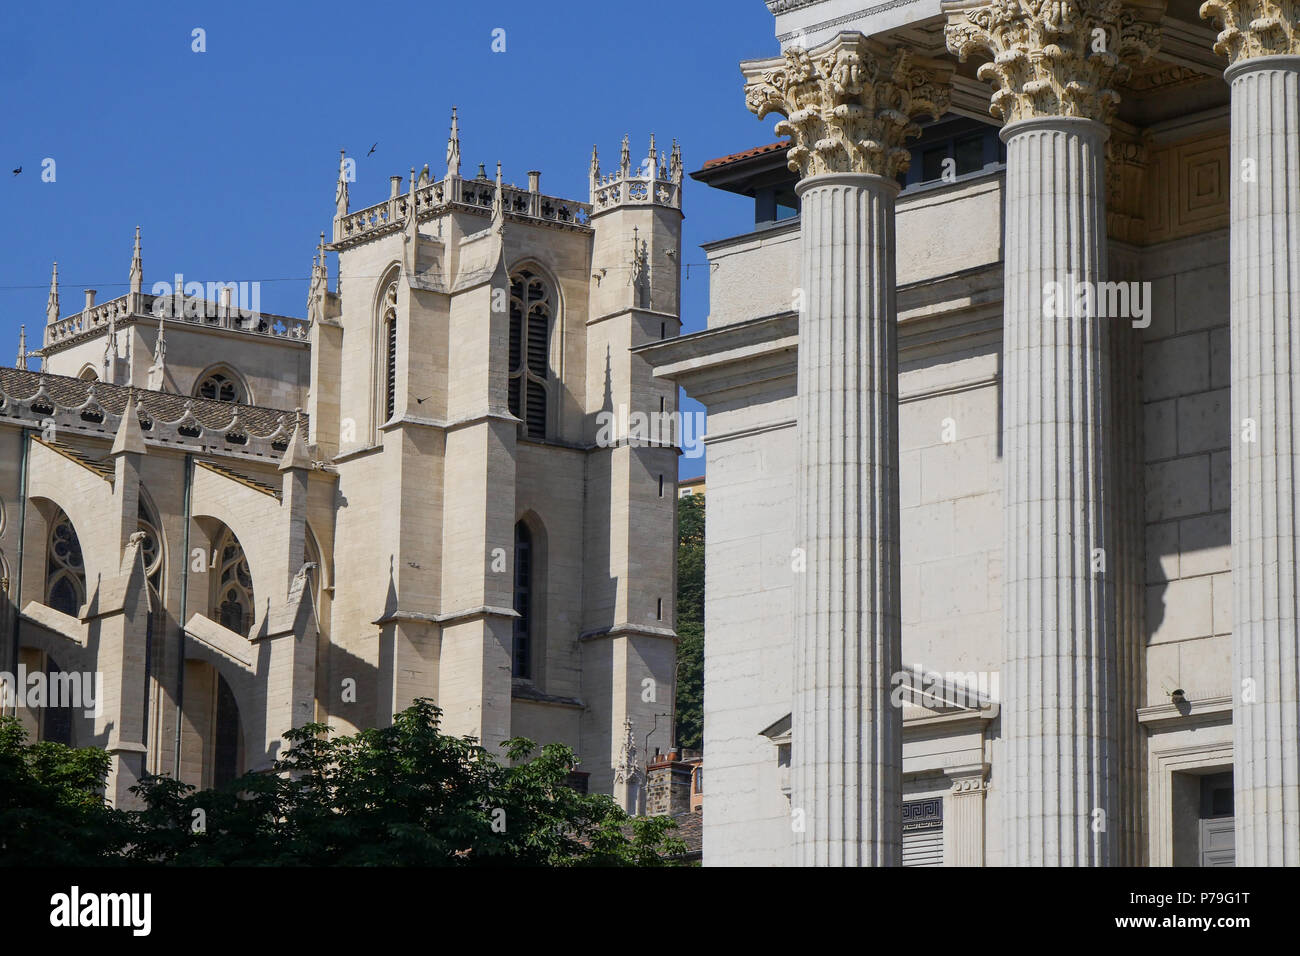 Saint-Jean Cathedral and Lyons Court of Appeal, Saint-Jean district, Lyon, France - Stock Image